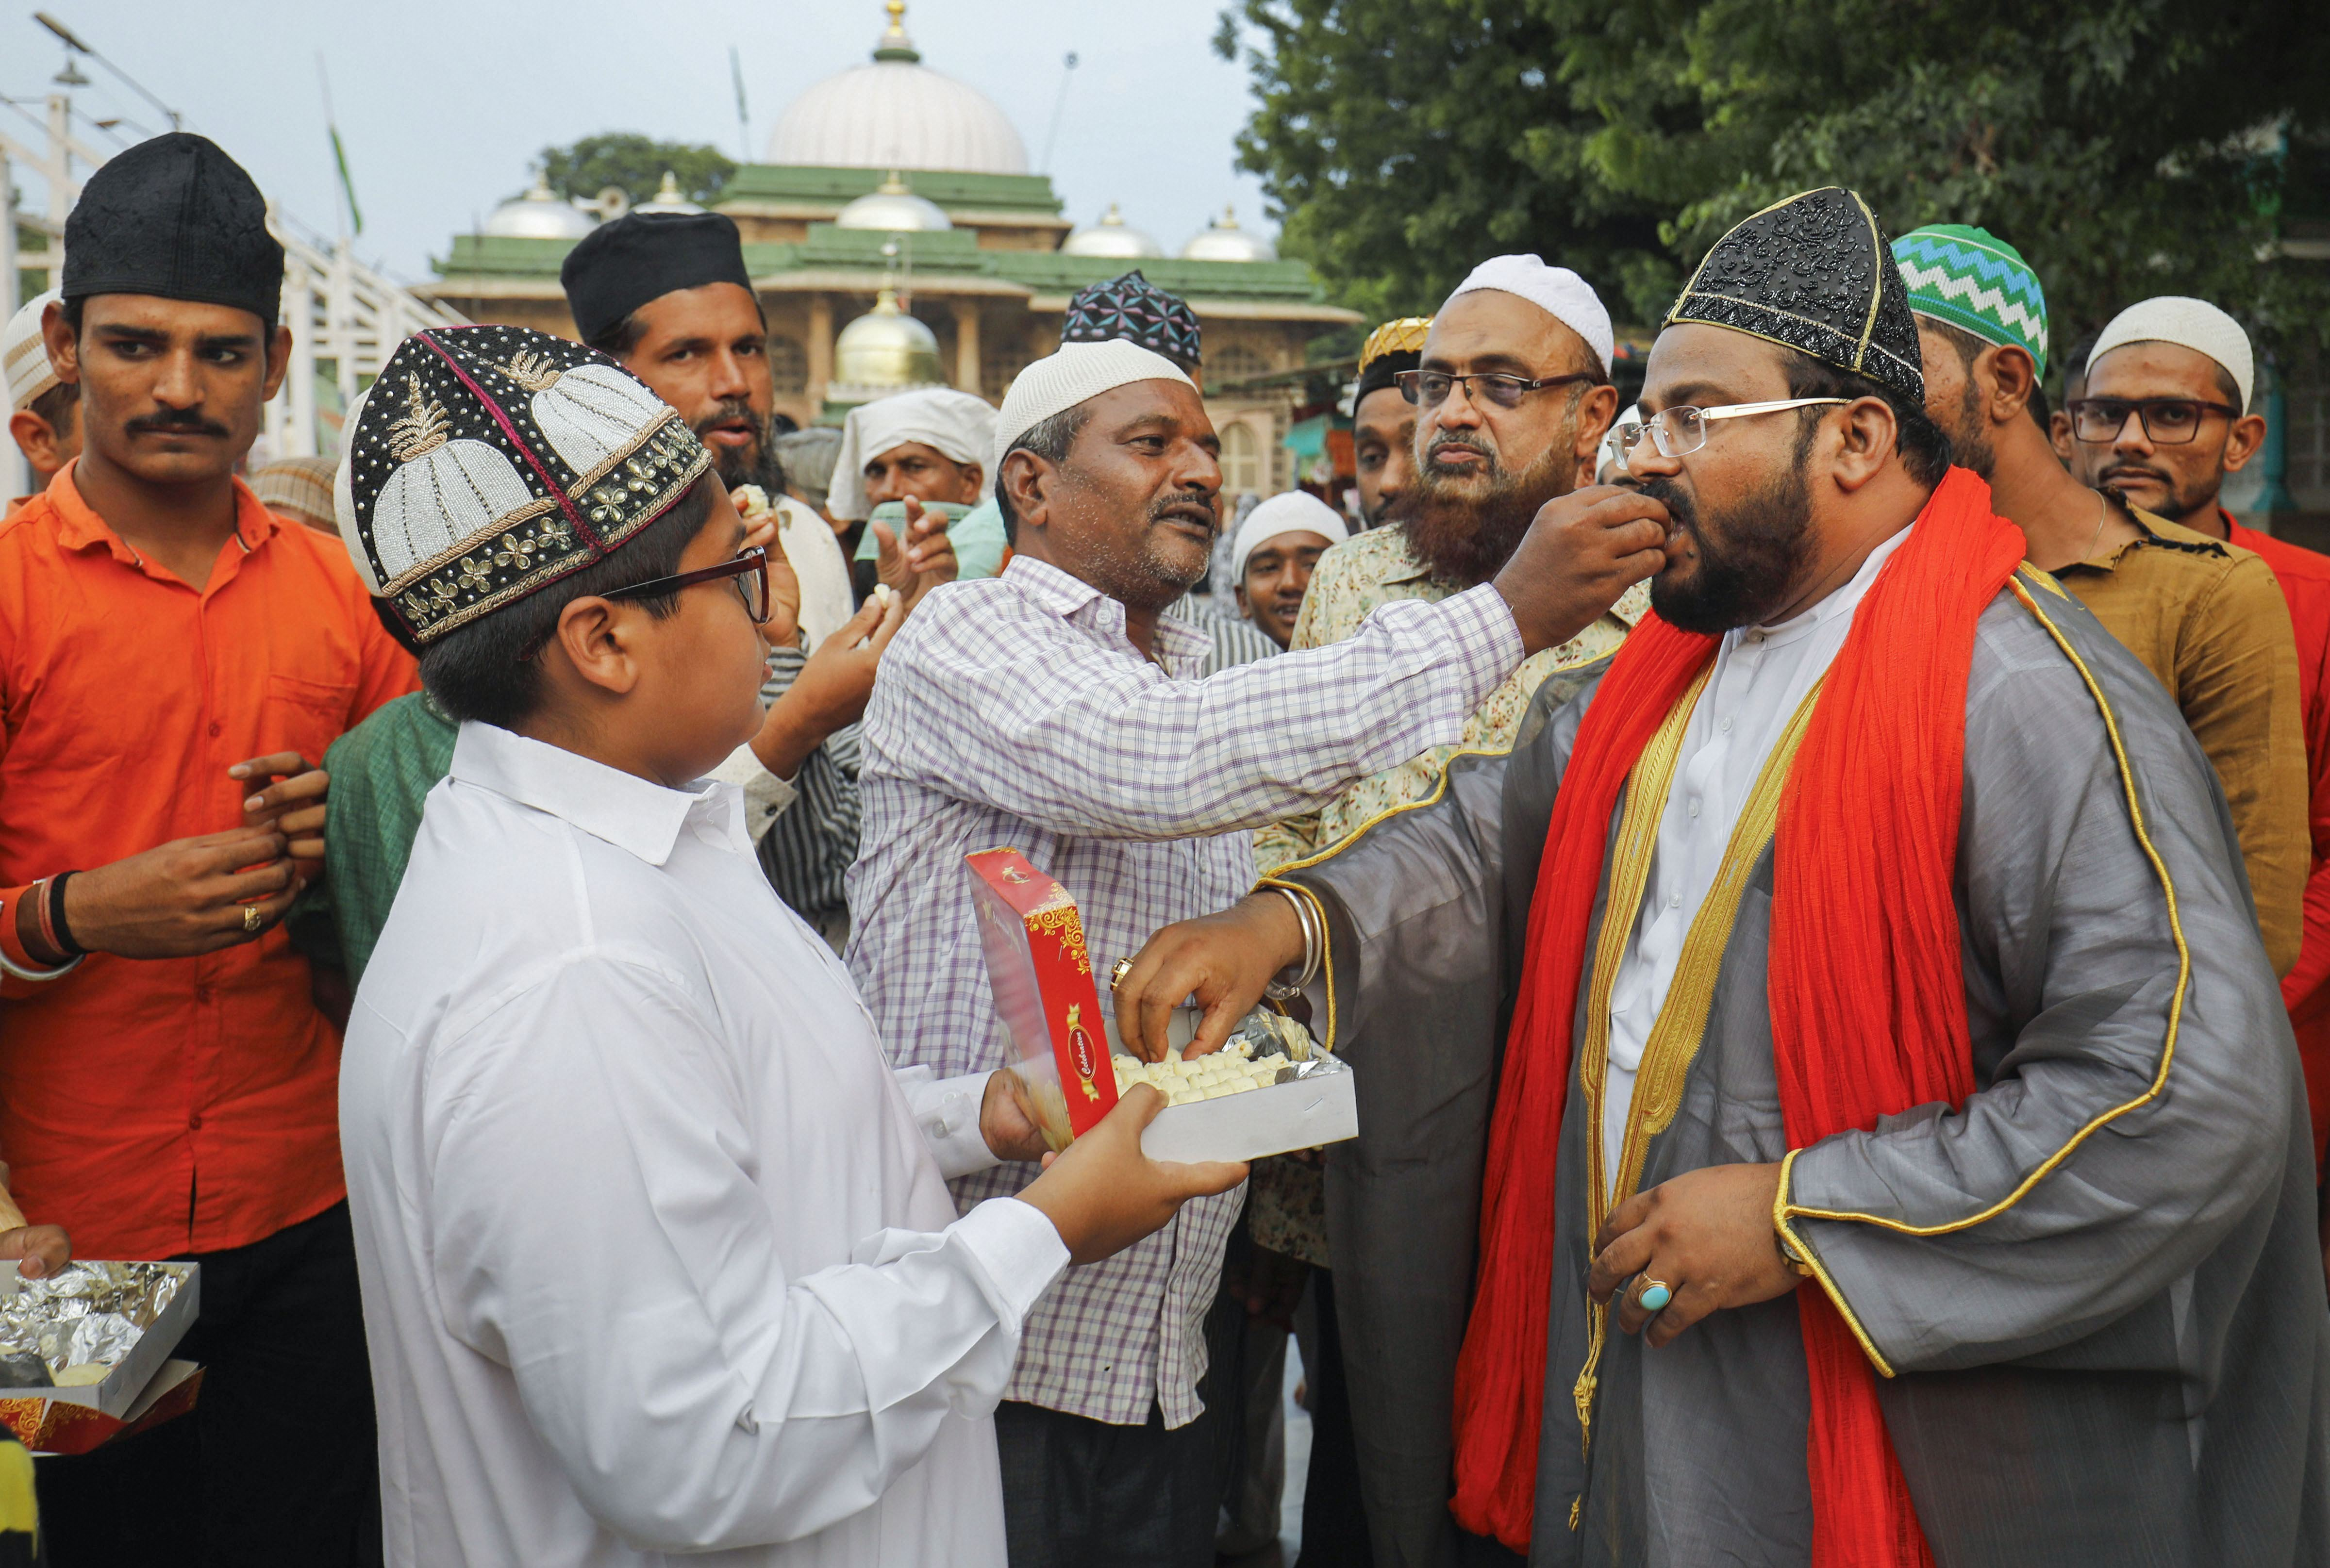 Muslims offer sweets to each other after the Supreme Court's verdict on the Ayodhya case, outside the Shah-e-alam shrine in Ahmedabad, Saturday, November 9, 2019.